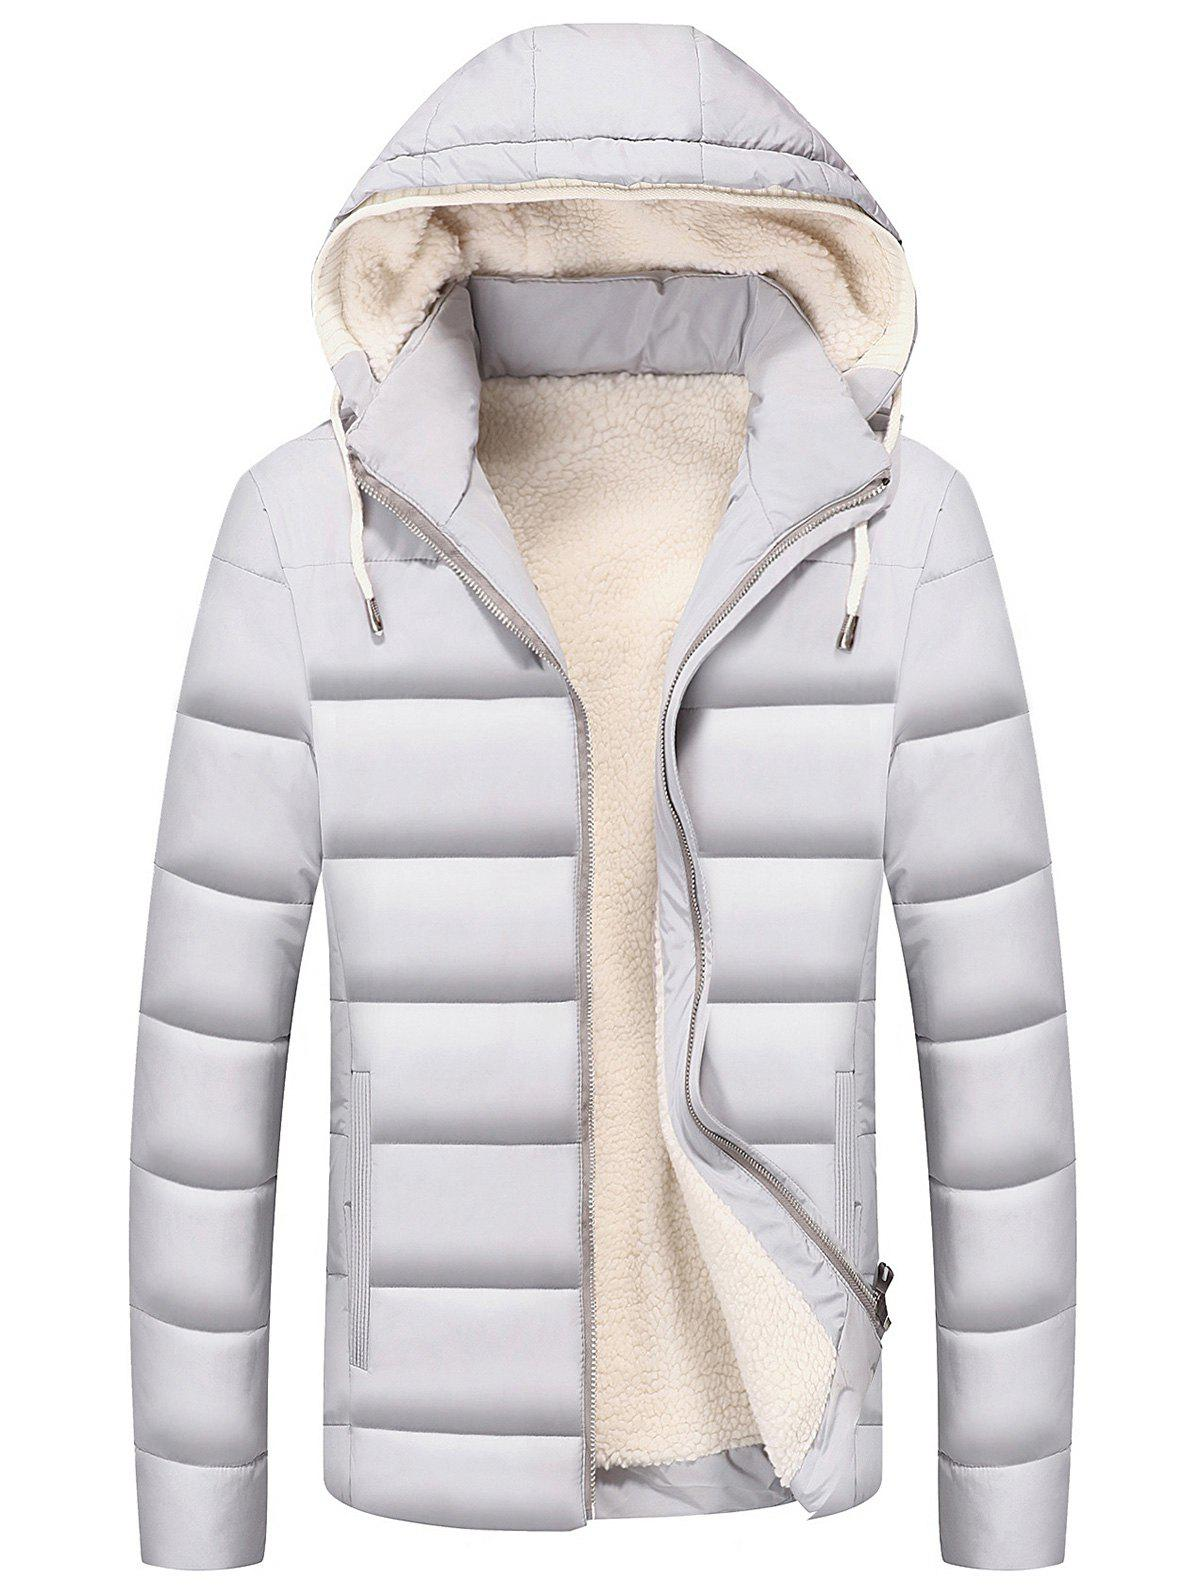 Drawstring Hood Zip Up Puffer Jacket - WHITE 3XL